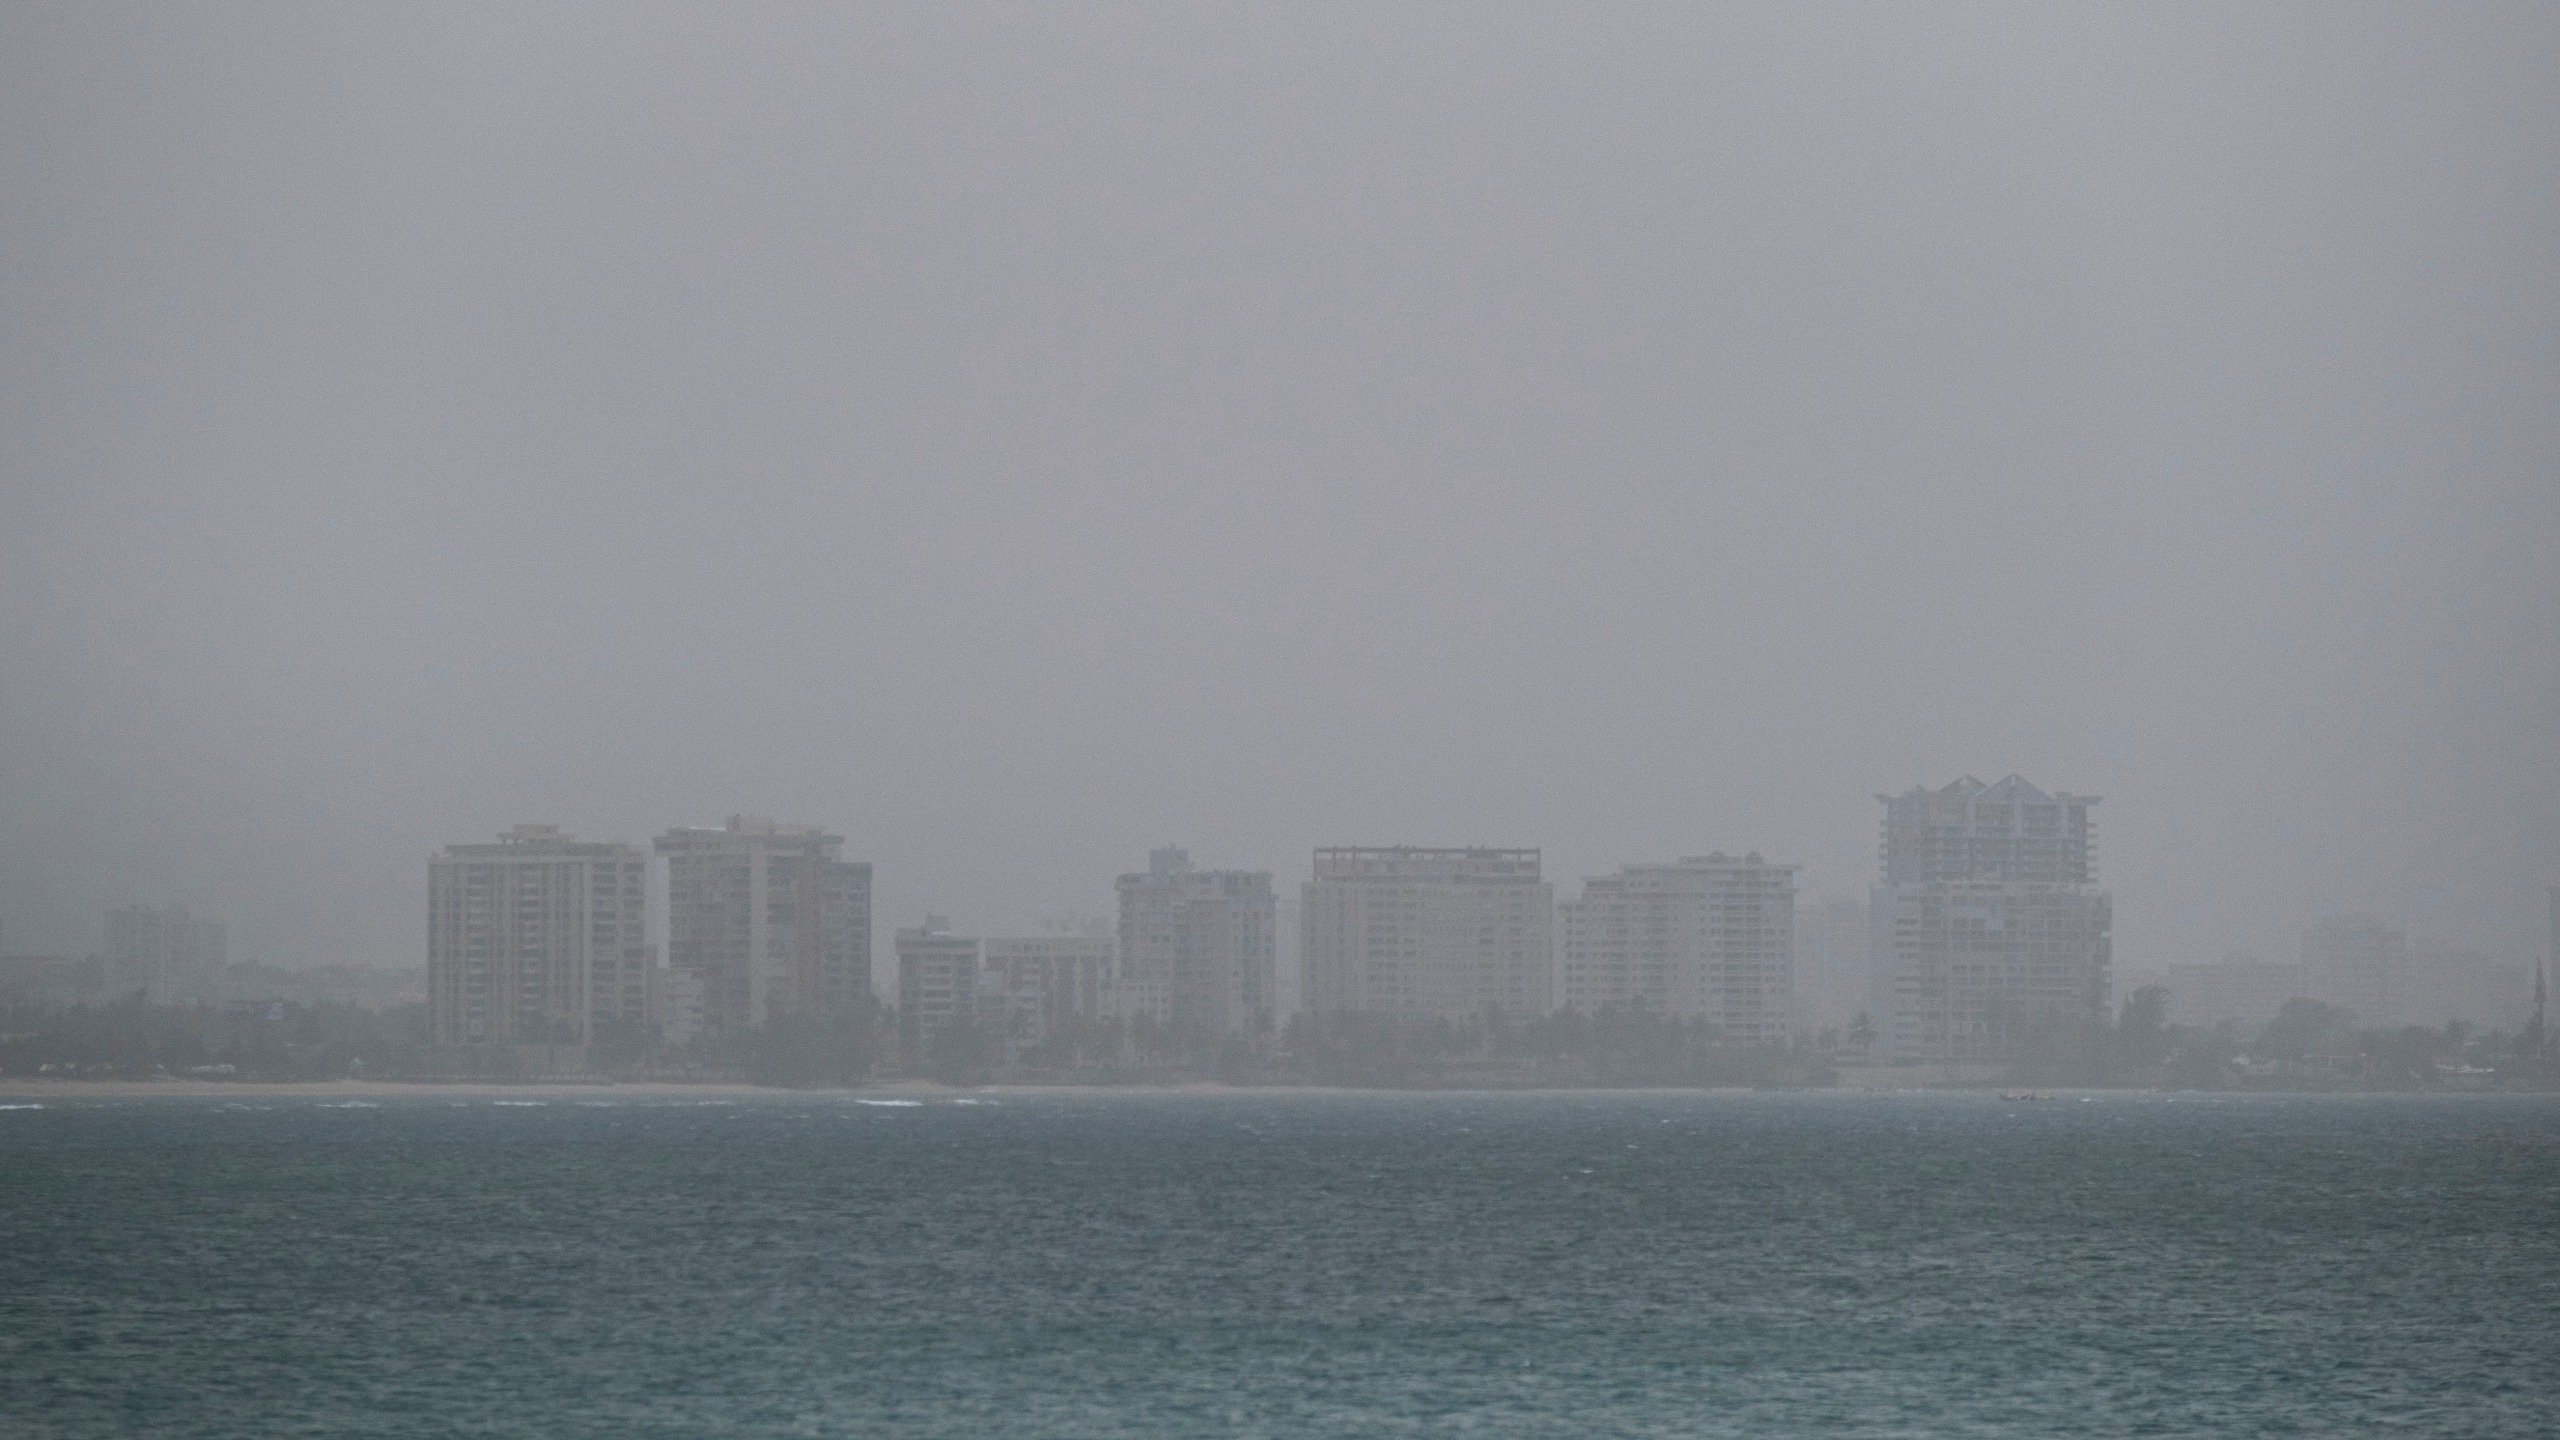 A vast cloud of Sahara dust is blanketing the city of San Juan, Puerto Rico, on June 22, 2020. (RICARDO ARDUENGO/AFP via Getty Images)